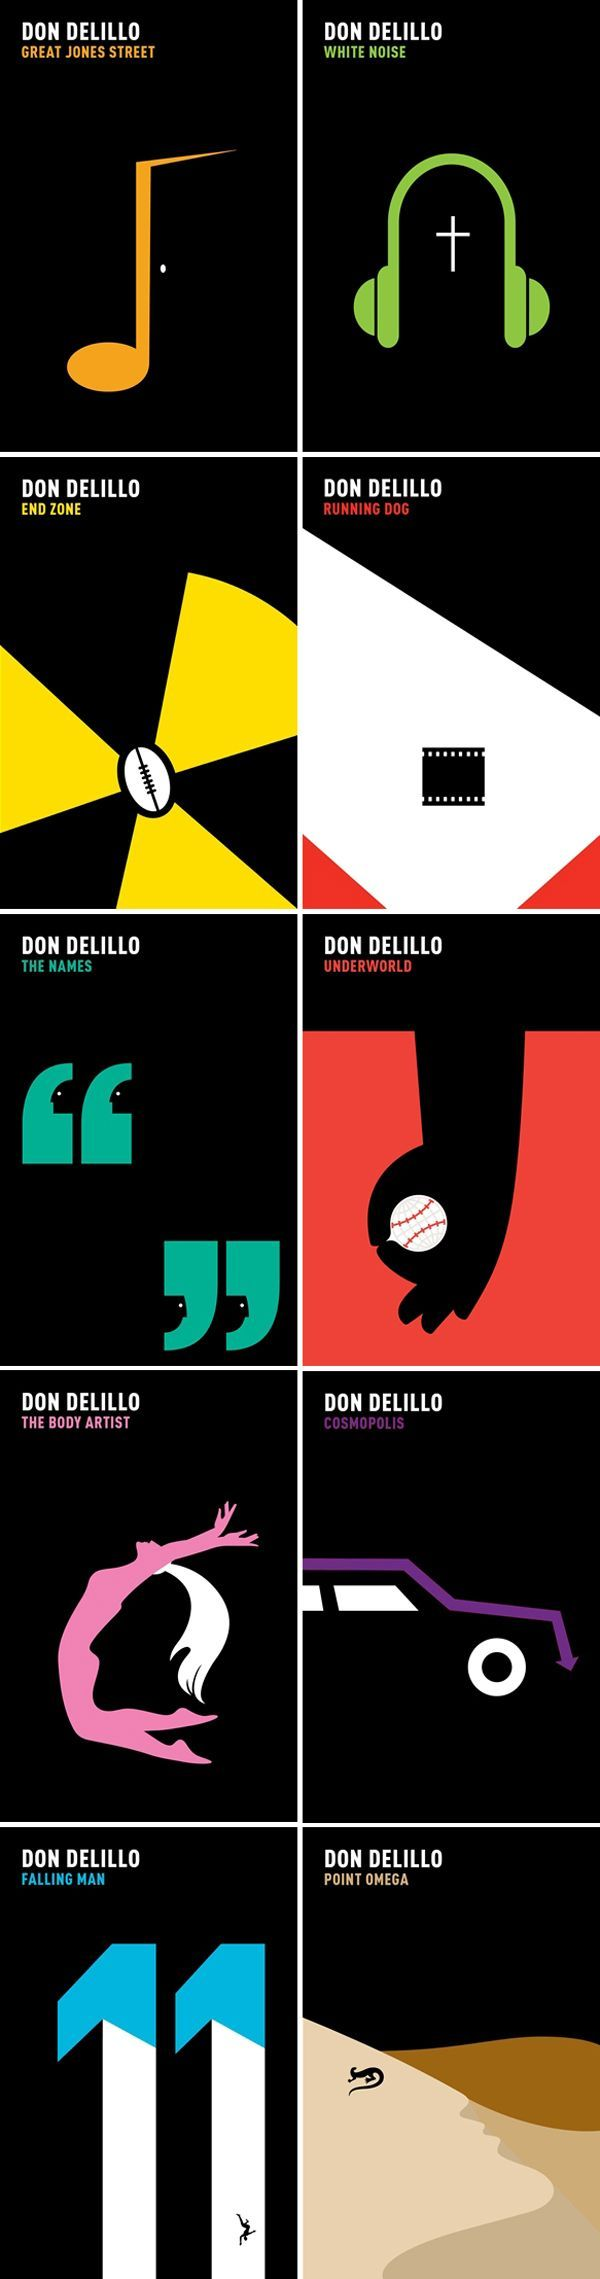 Don DeLillo's backlist, art directed and designed by It's Nice That with illustrations by Noma Bar. Published by Picador, 2011.